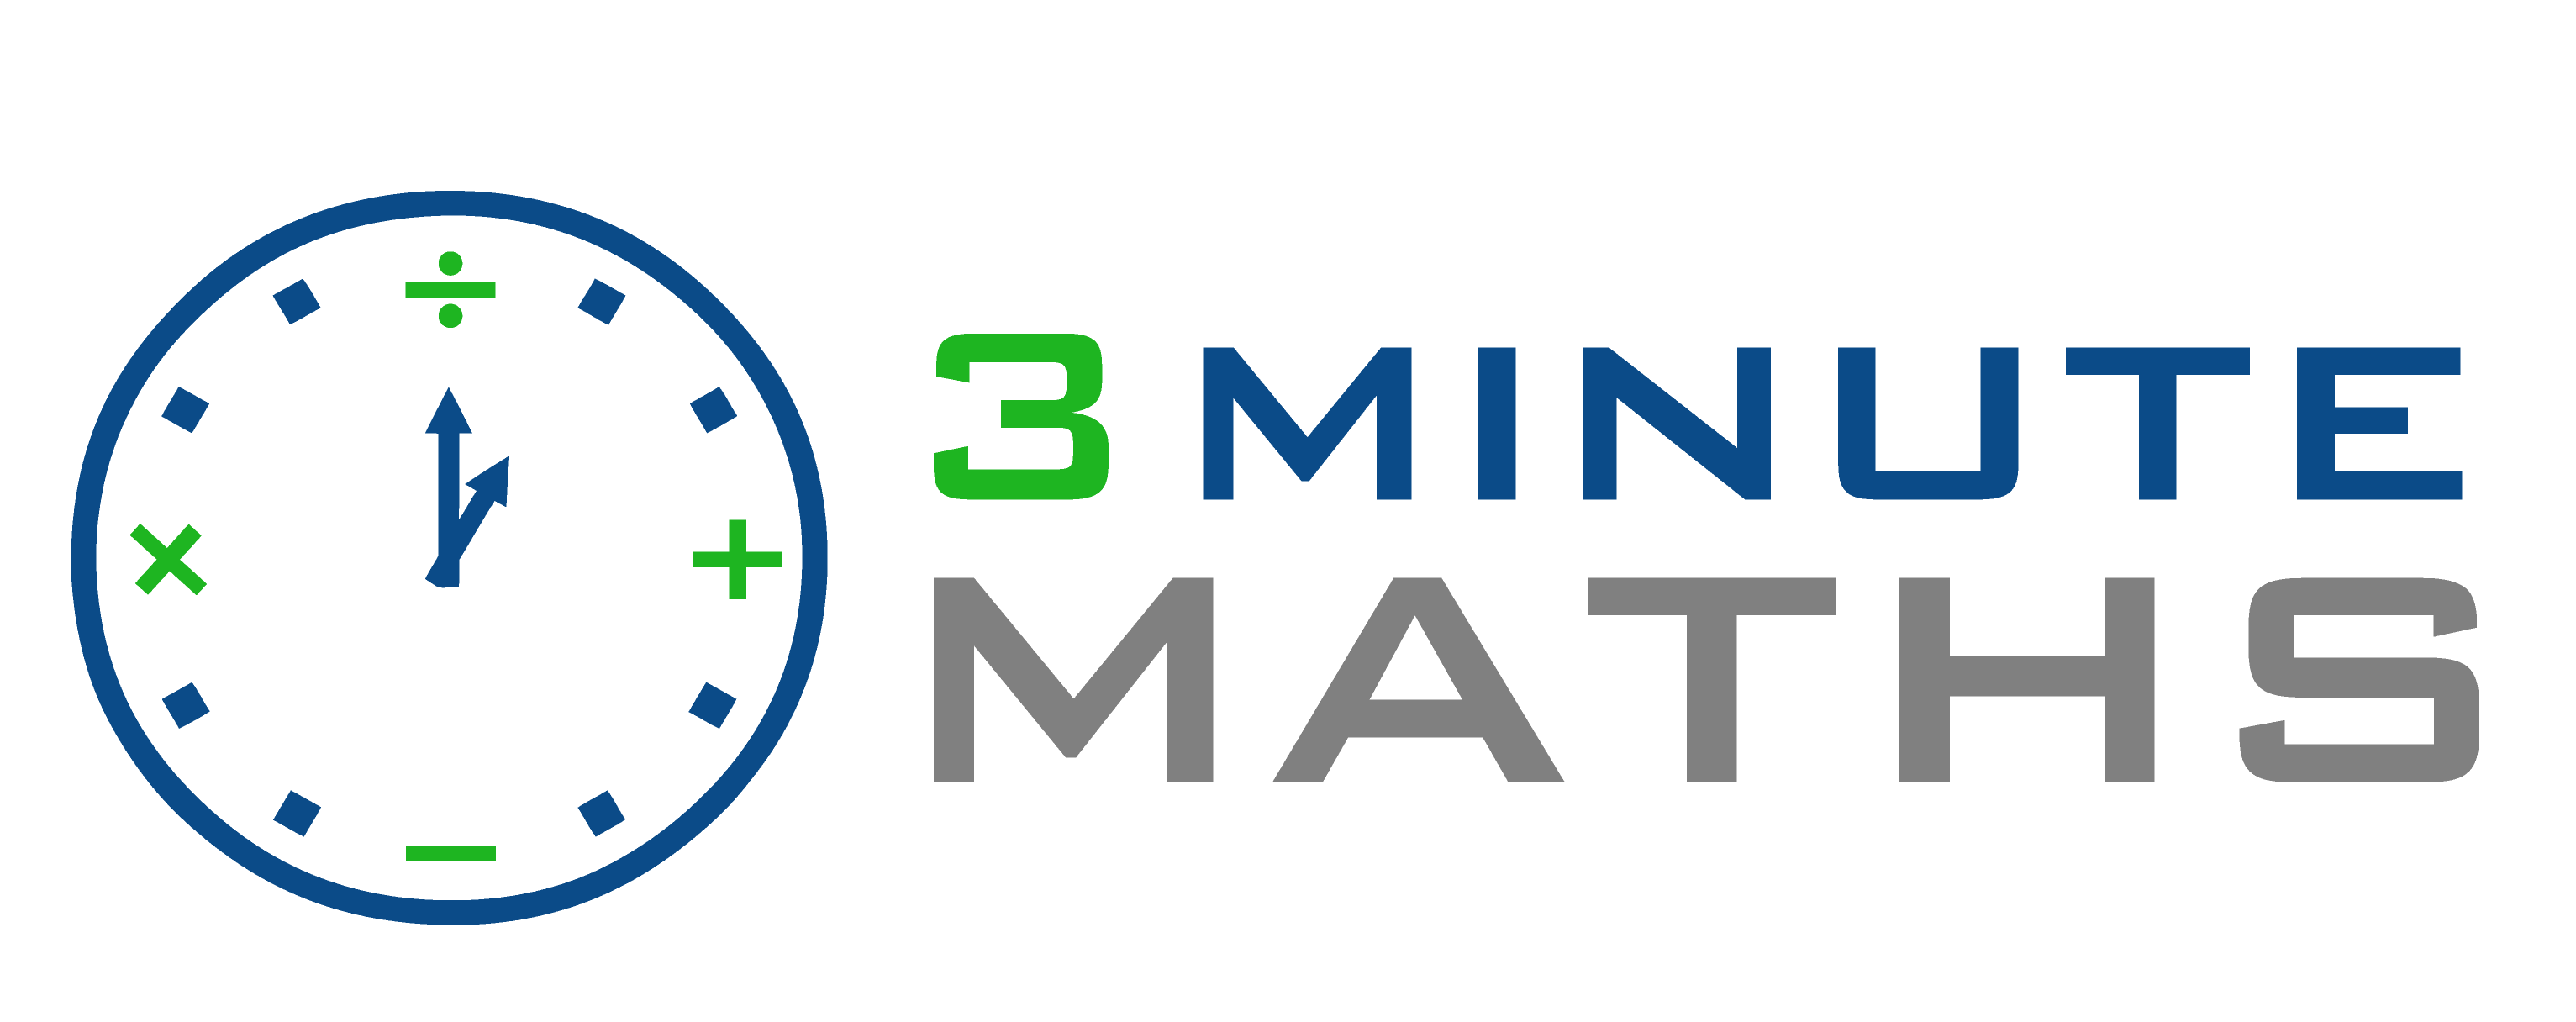 3 Minute Math Archives - 3 Minute Maths